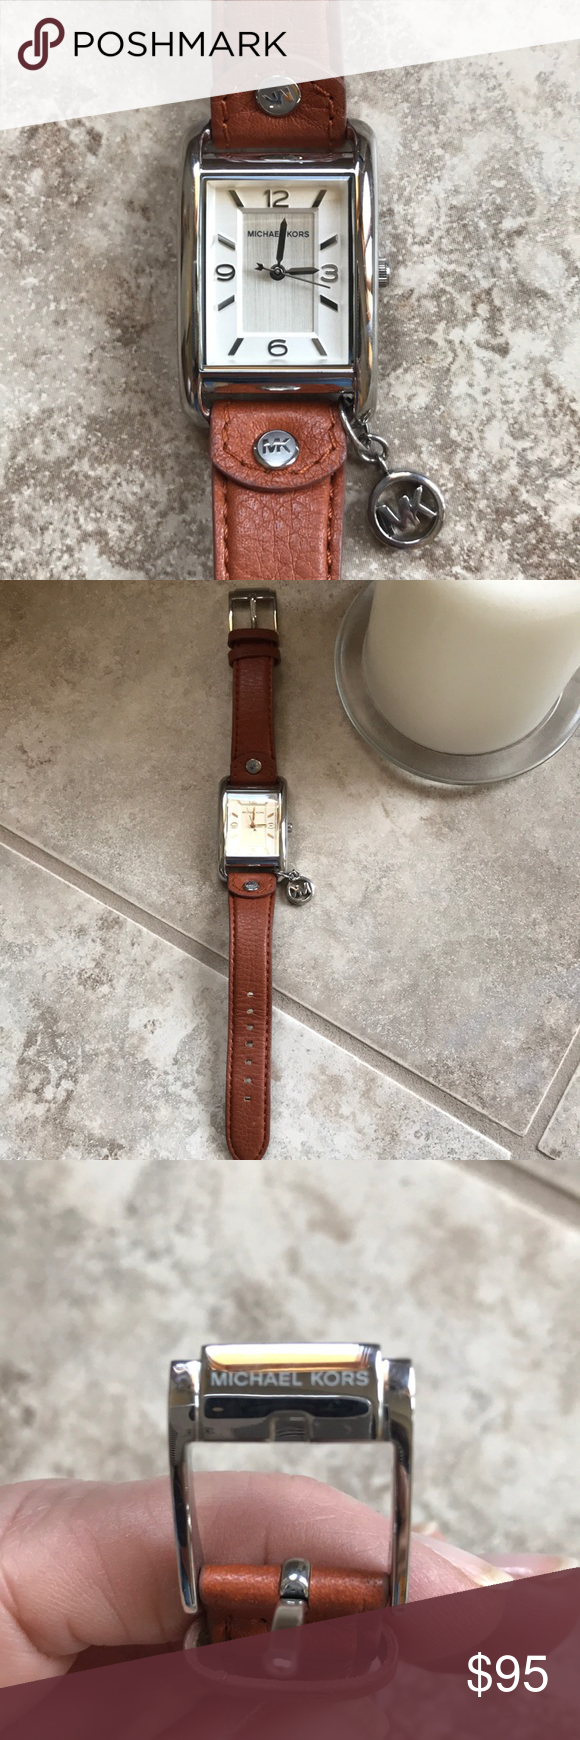 1ef9ea3ce Authentic Michael Kors Watch 🌺🌺 Michael Kors watch with brown leather band.  MK-2165. Hanging MK charm. Silver findings. Like new!!